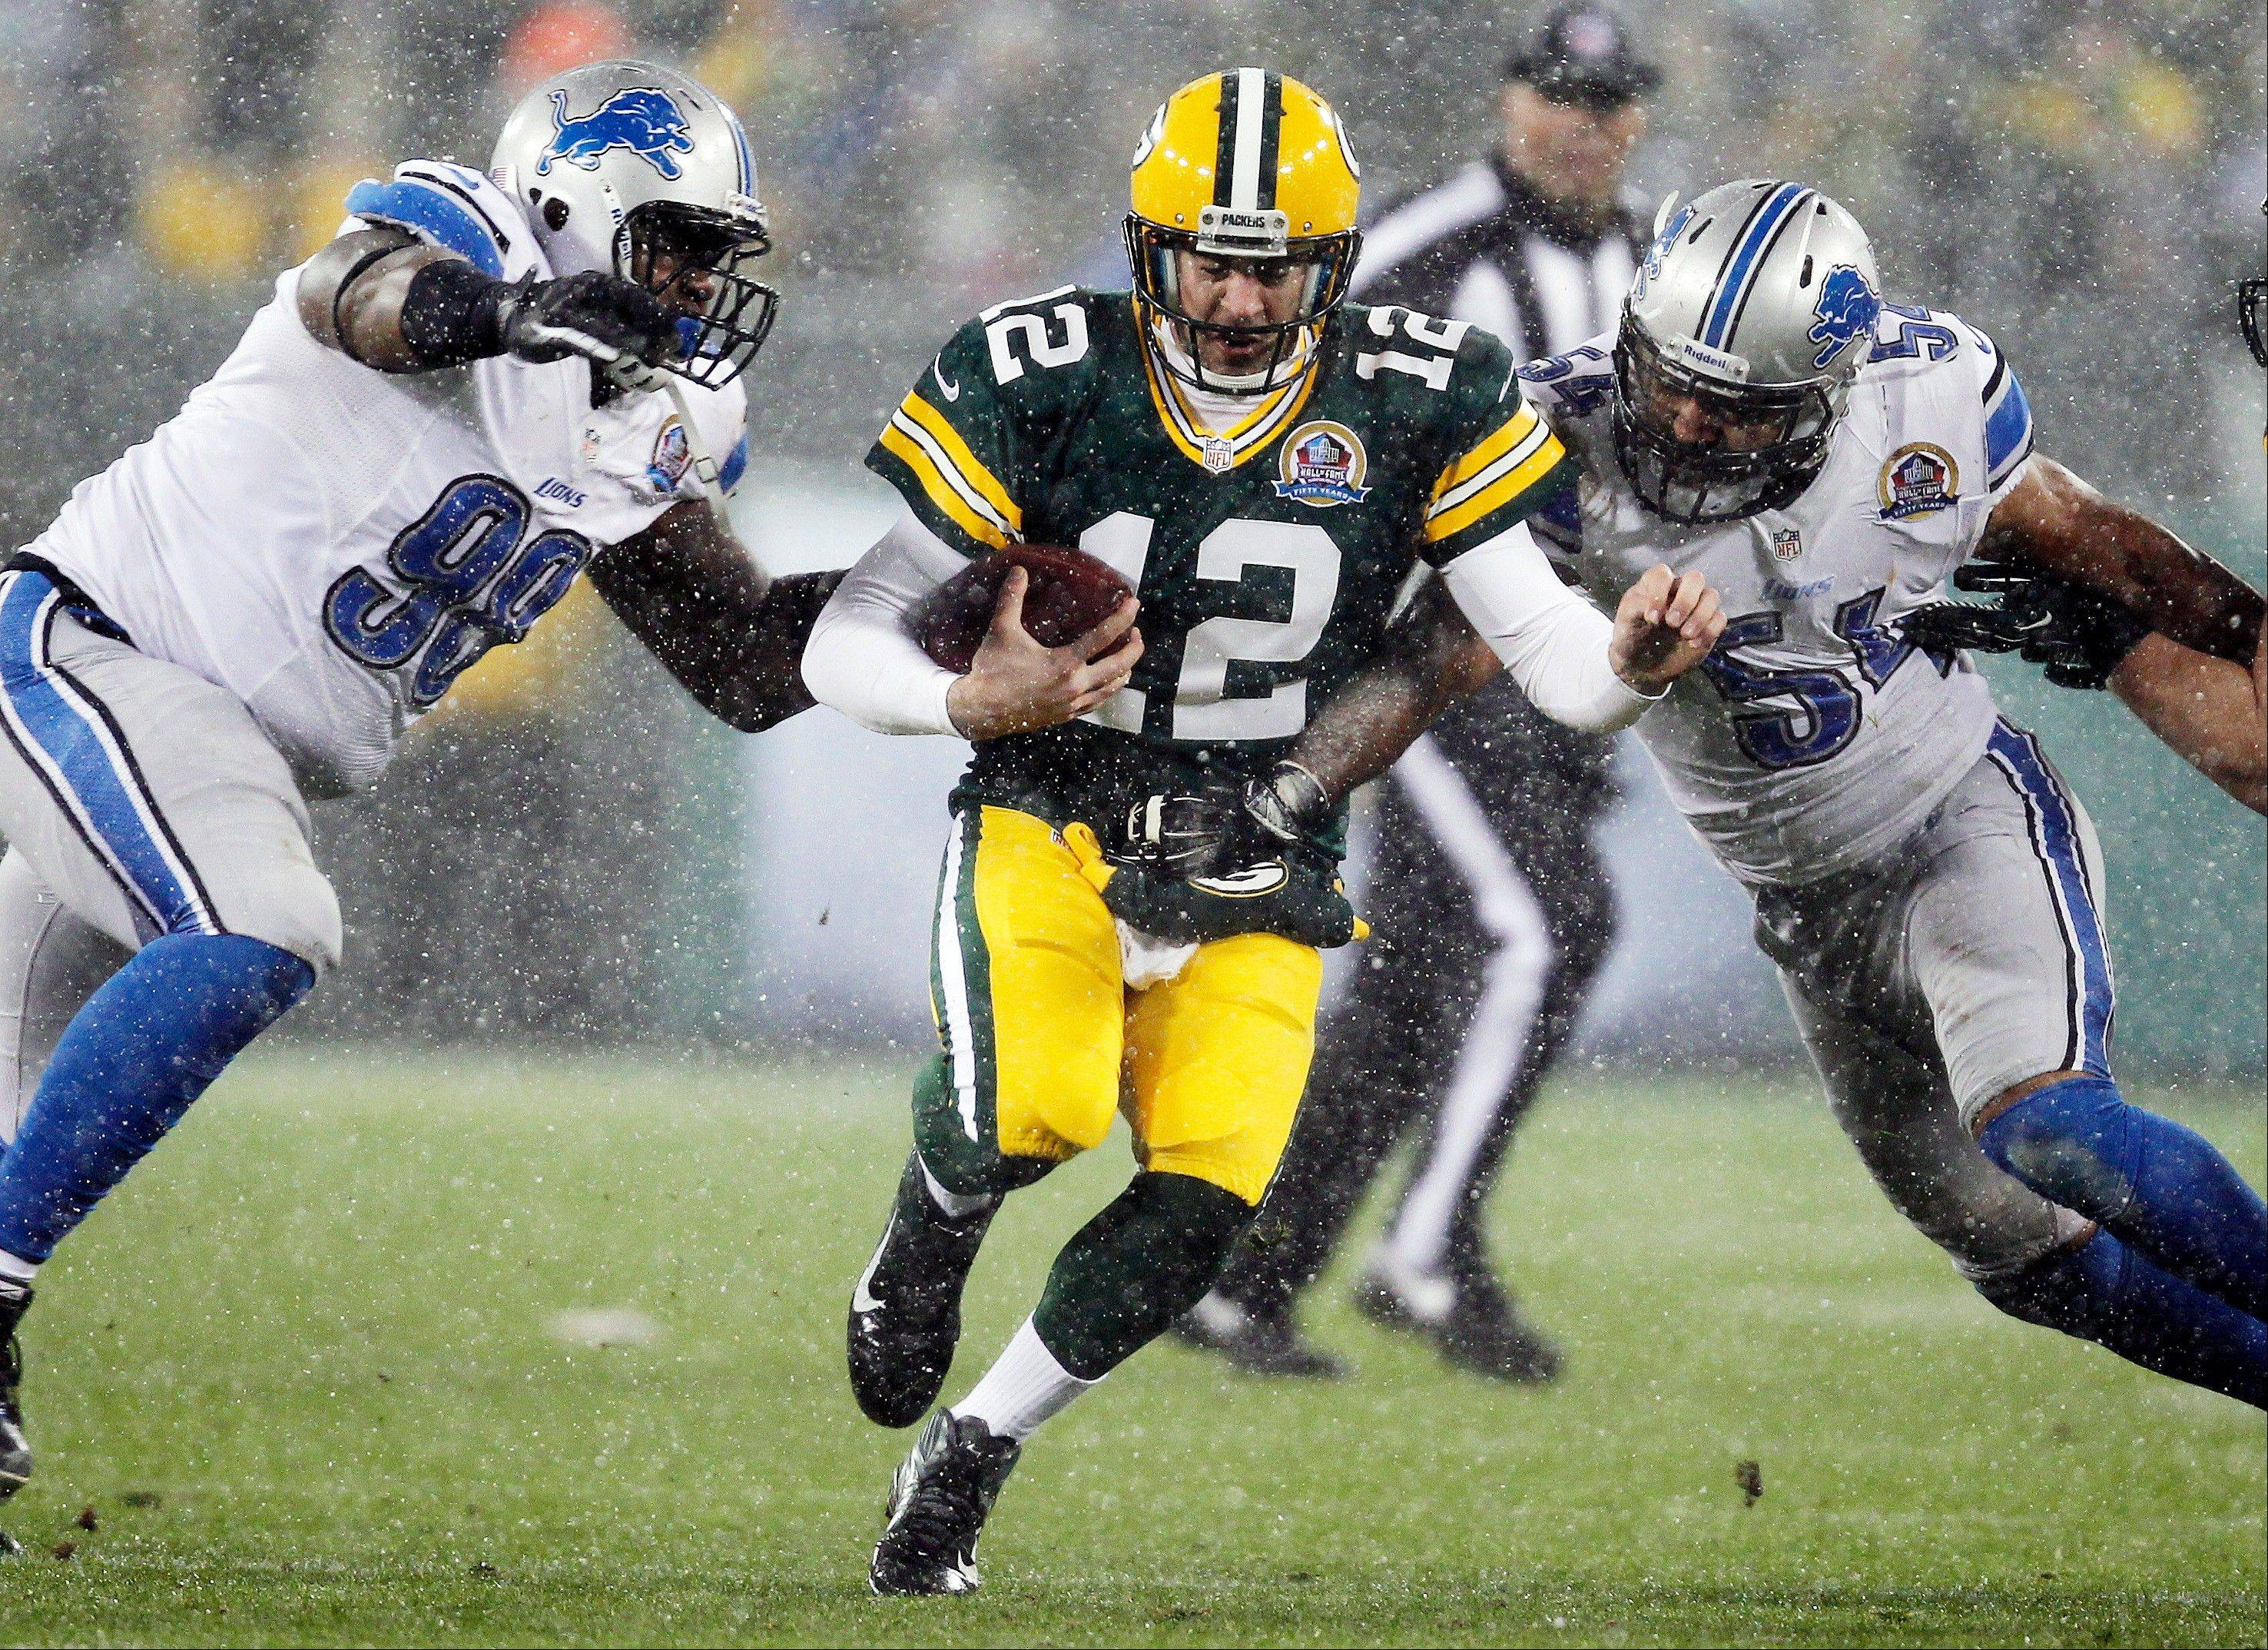 Green Bay Packers quarterback Aaron Rodgers (12) runs for yardage between Detroit Lions� Nick Fairley (98) and DeAndre Levy (54) during an NFL football game Sunday in Green Bay, Wis. NBC broadcast the game nationally.